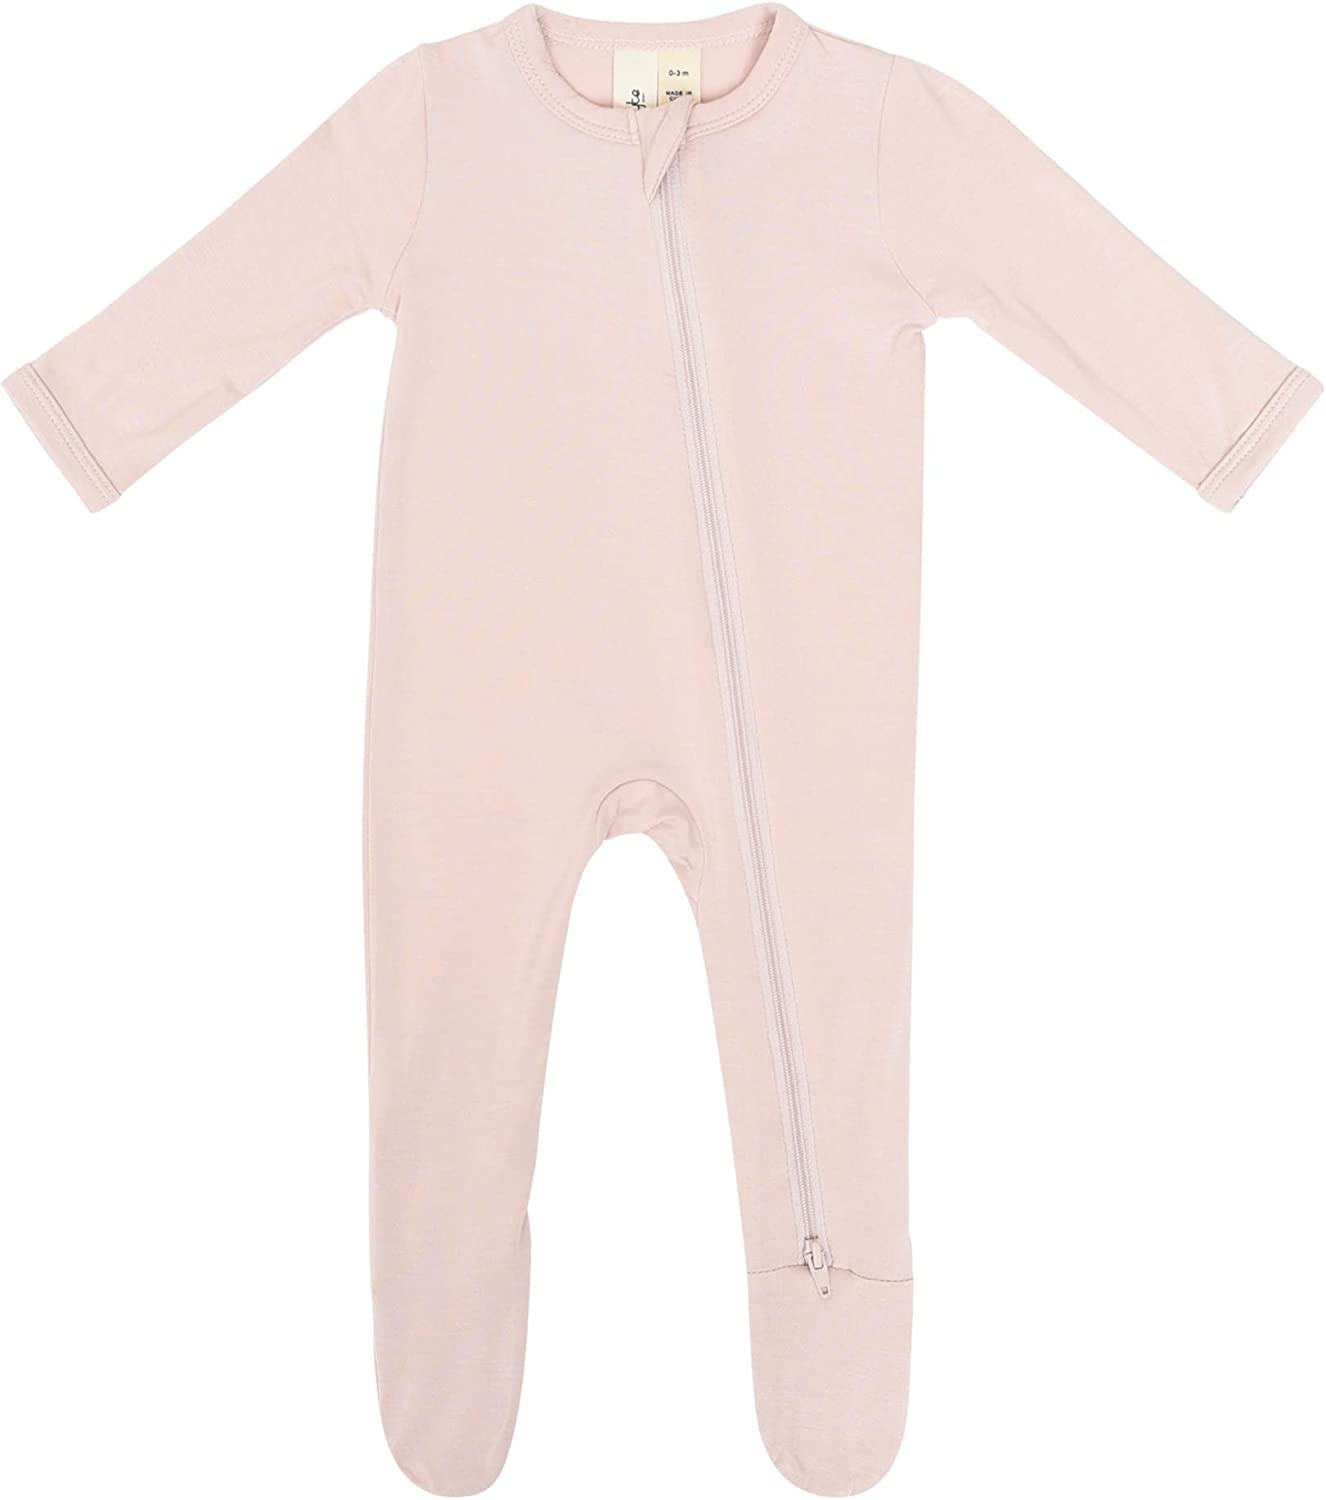 KYTE BABY Soft Bamboo Rayon Footies 0-24 Months Zipper Closure